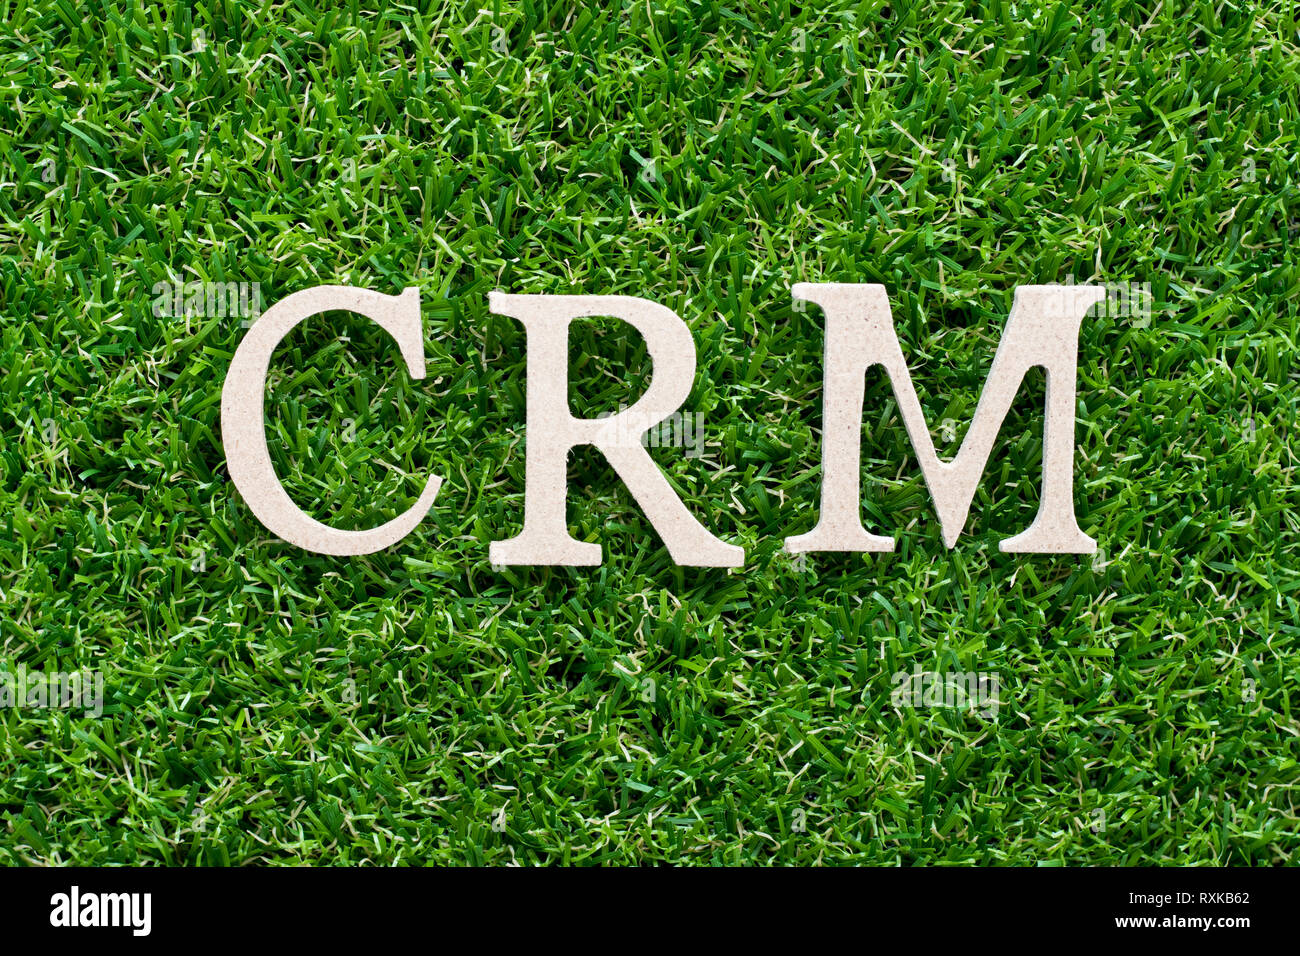 Wood alphabet in word CRM (abbreviation of Customer Relationship Management) on artificial green grass background - Stock Image